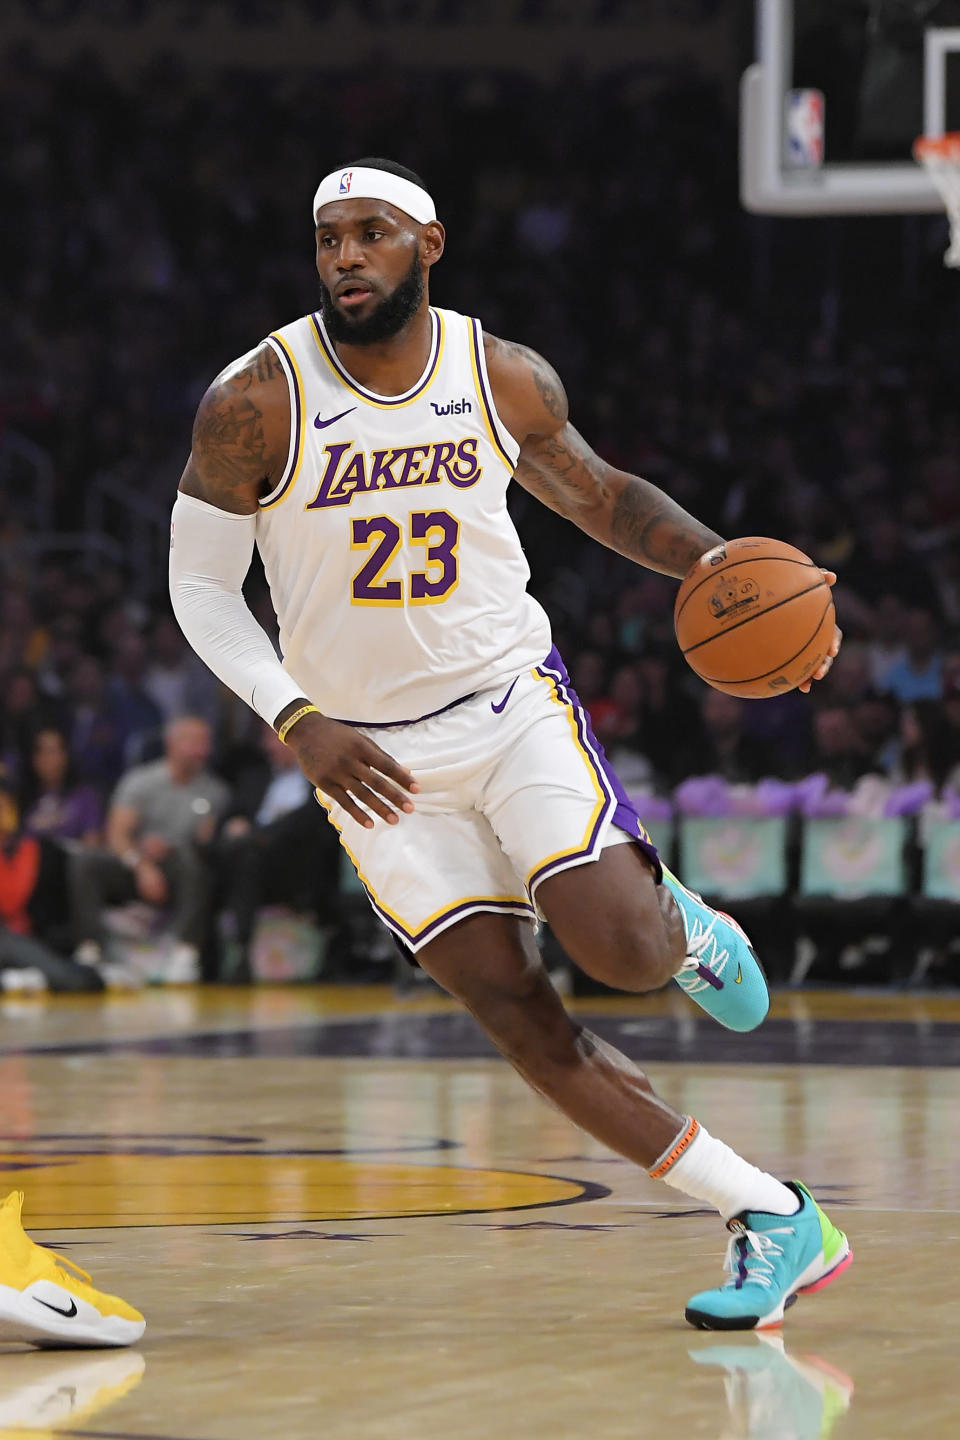 Los Angeles Lakers forward LeBron James dribbles during the first half of the team's preseason NBA basketball game against the Golden State Warriors on Wednesday, Oct. 16, 2019, in Los Angeles. (AP Photo/Mark J. Terrill)